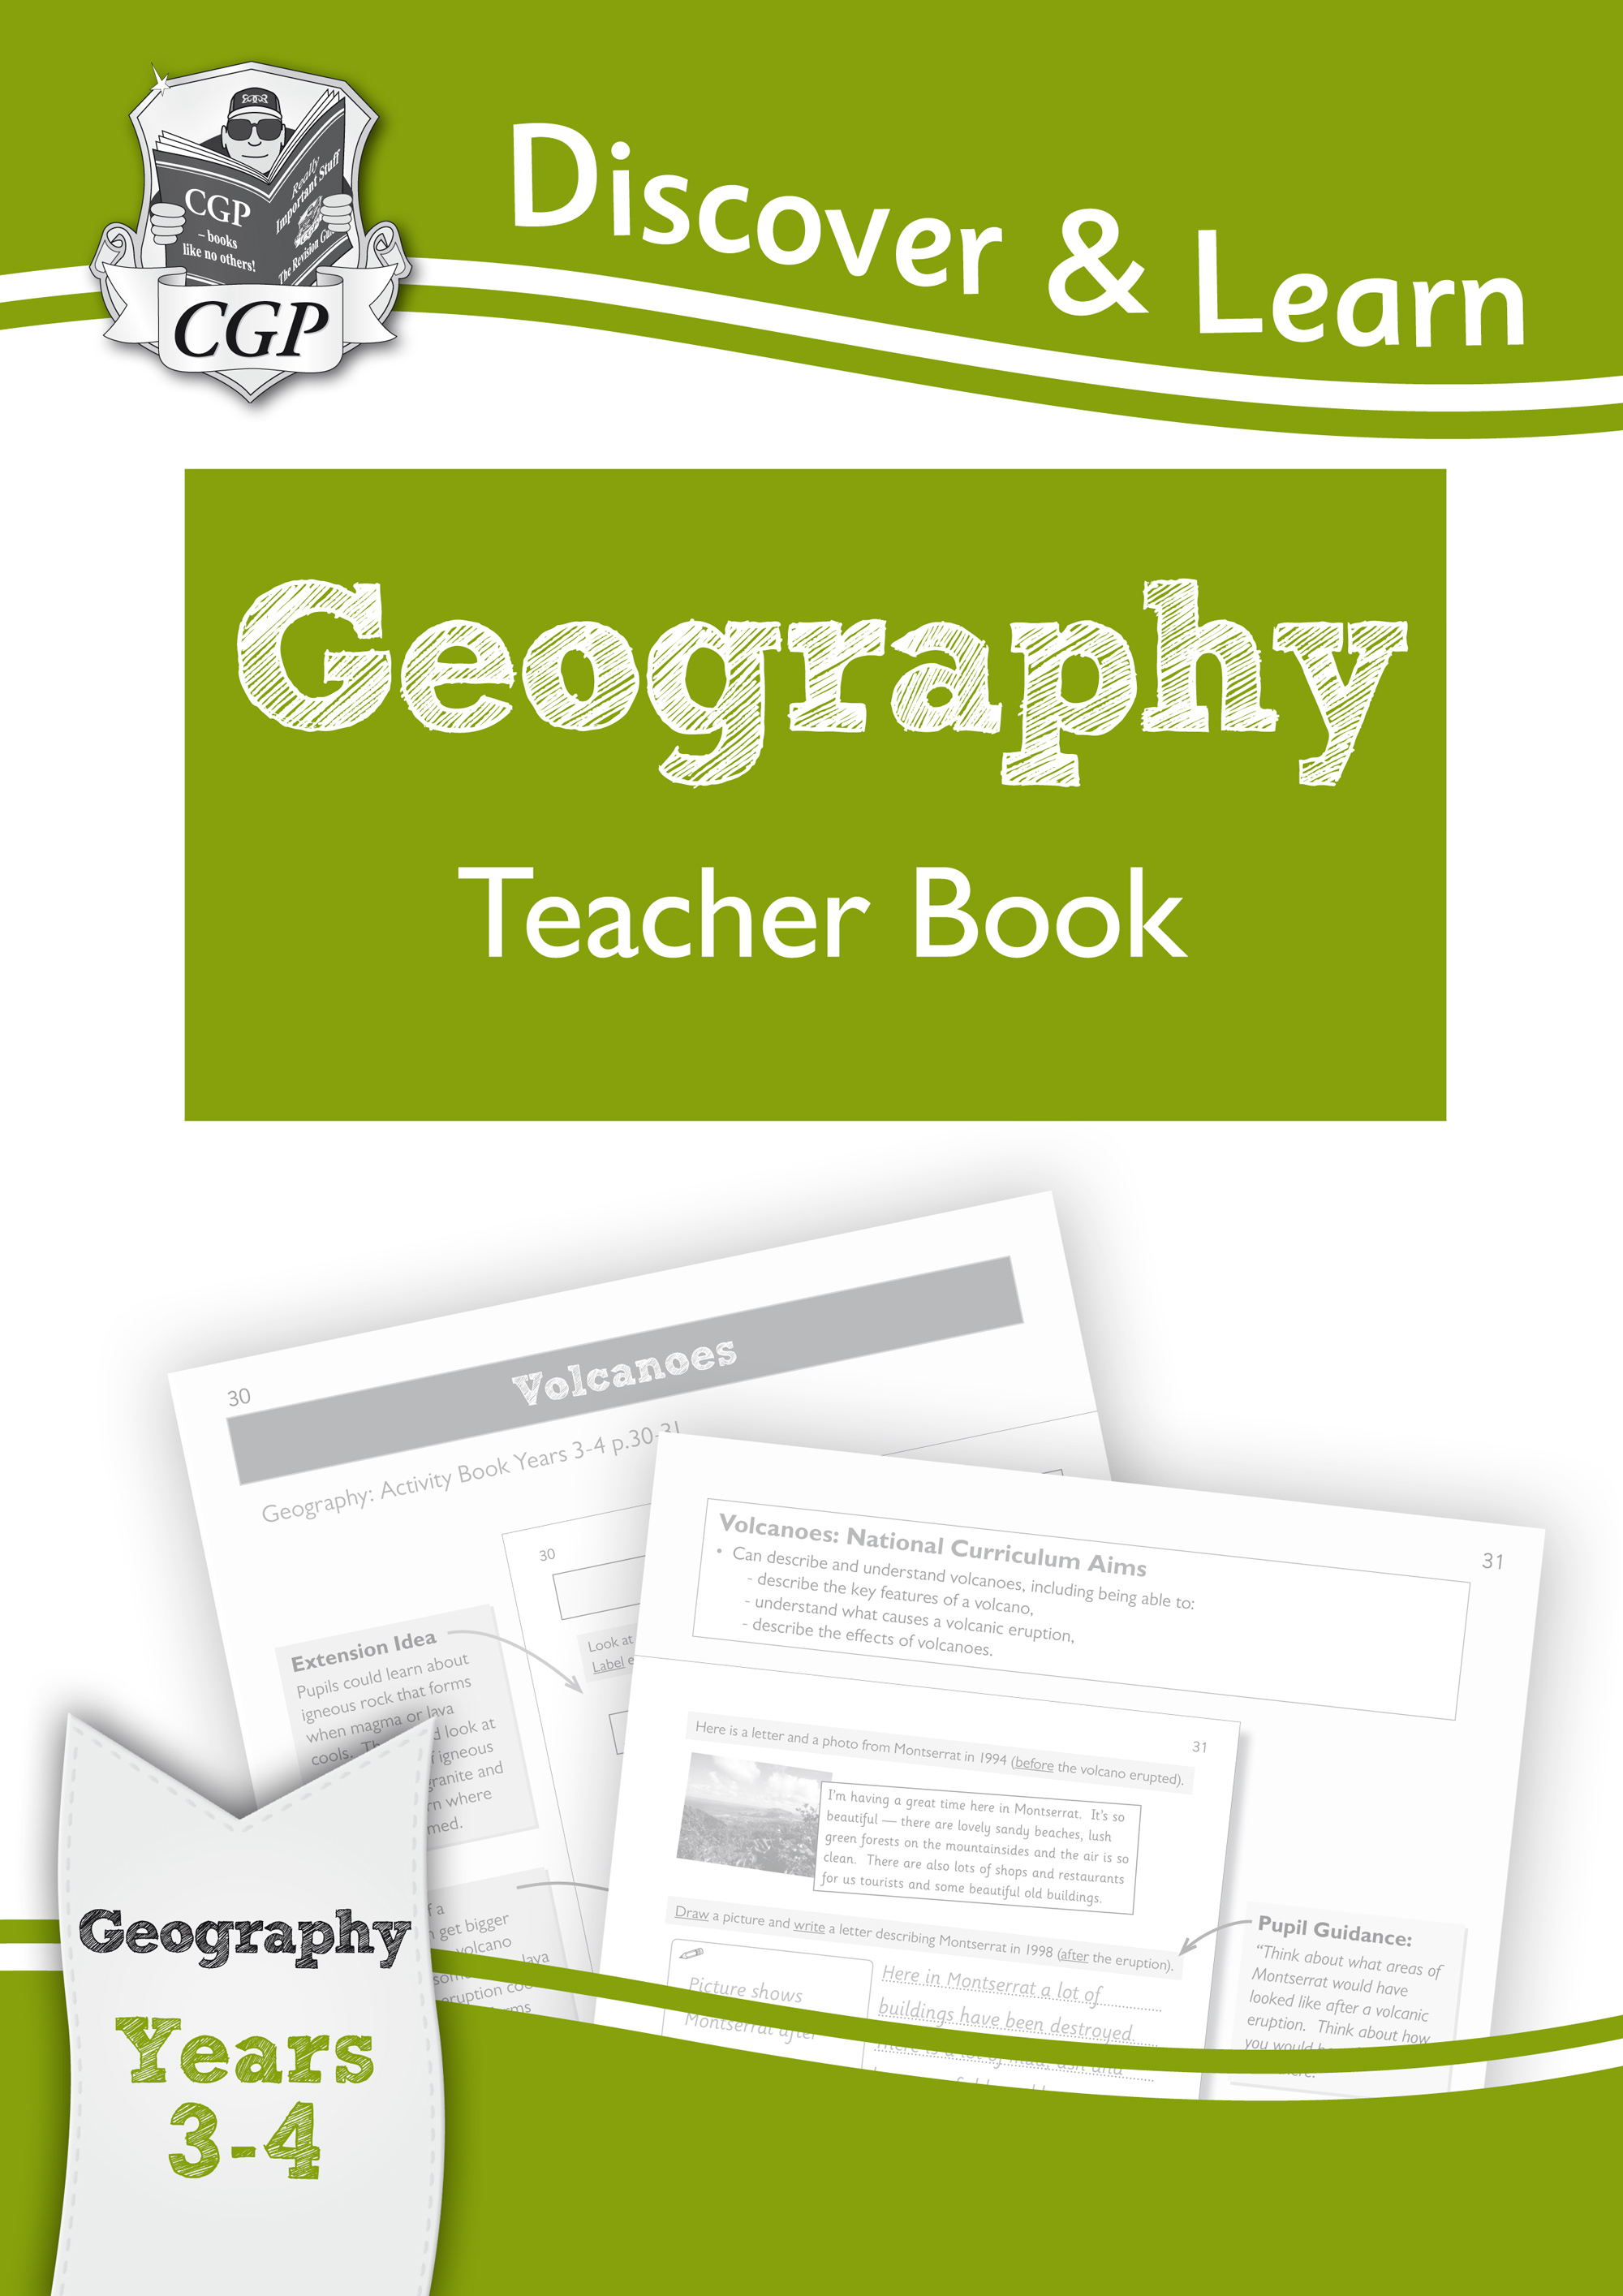 G1T21 - KS2 Discover & Learn: Geography - Teacher Book, Year 3 & 4